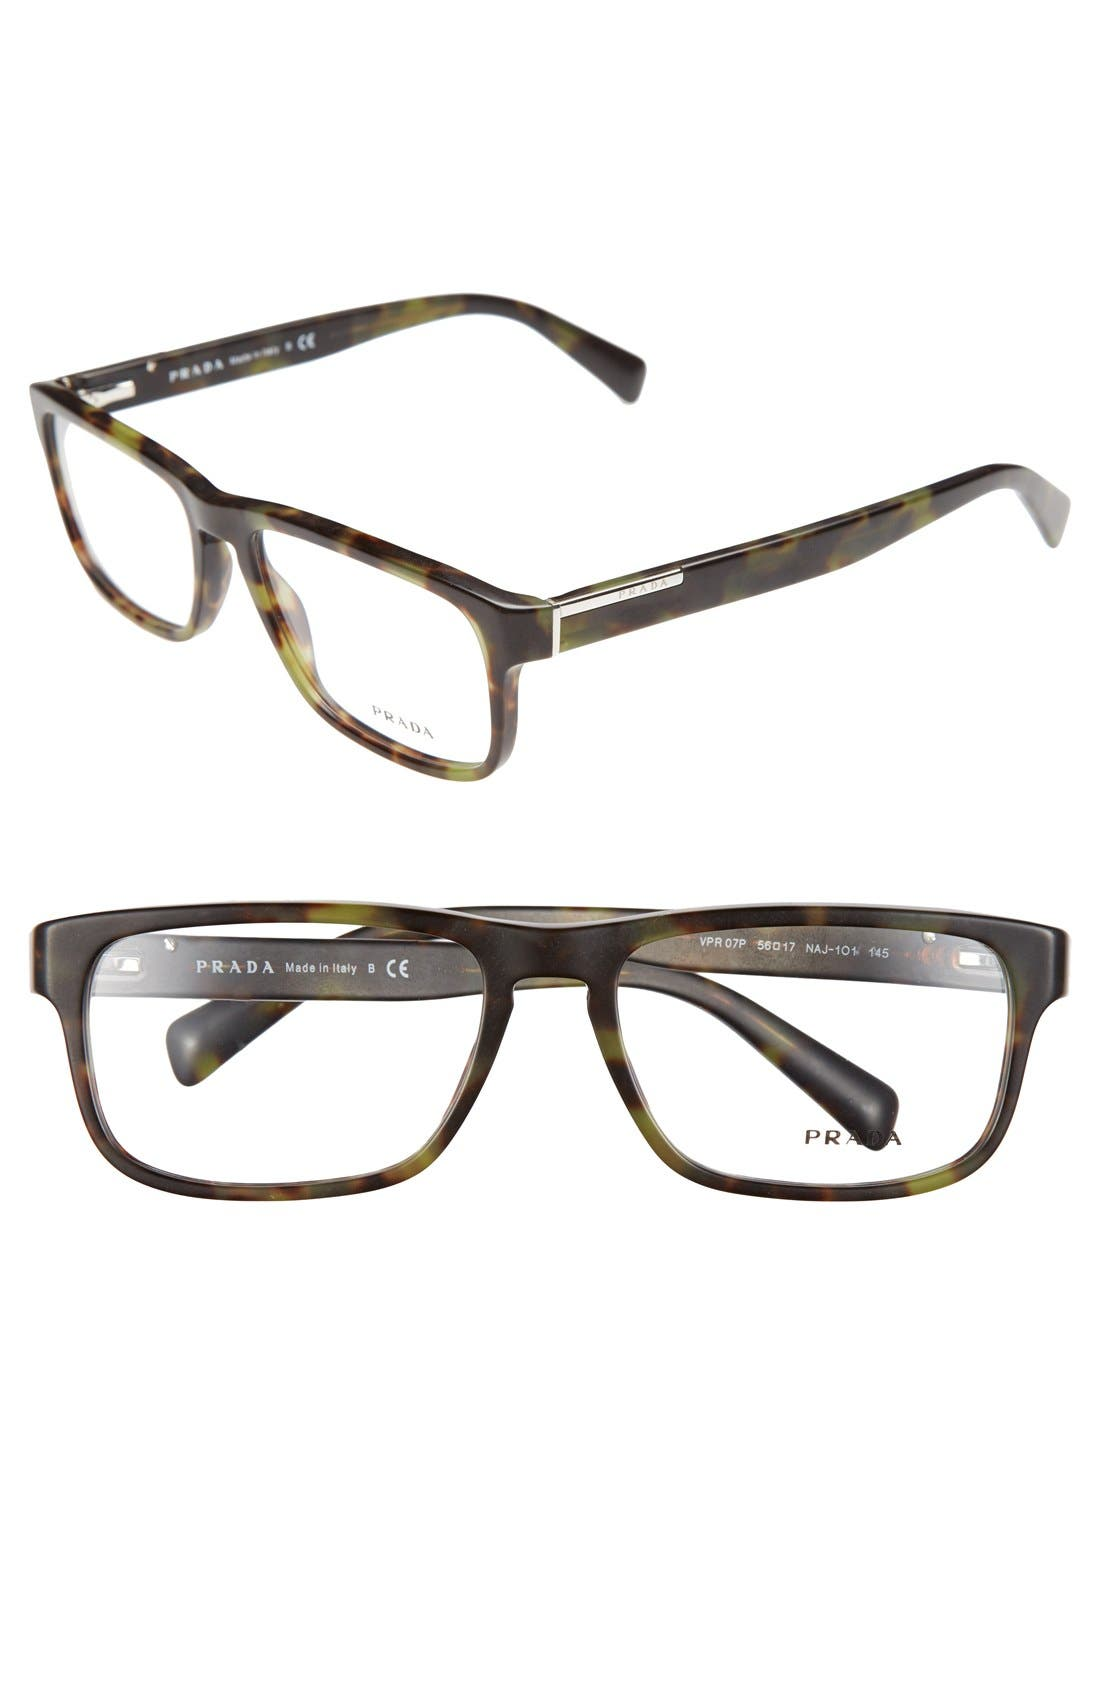 Main Image - Prada 56mm Optical Glasses